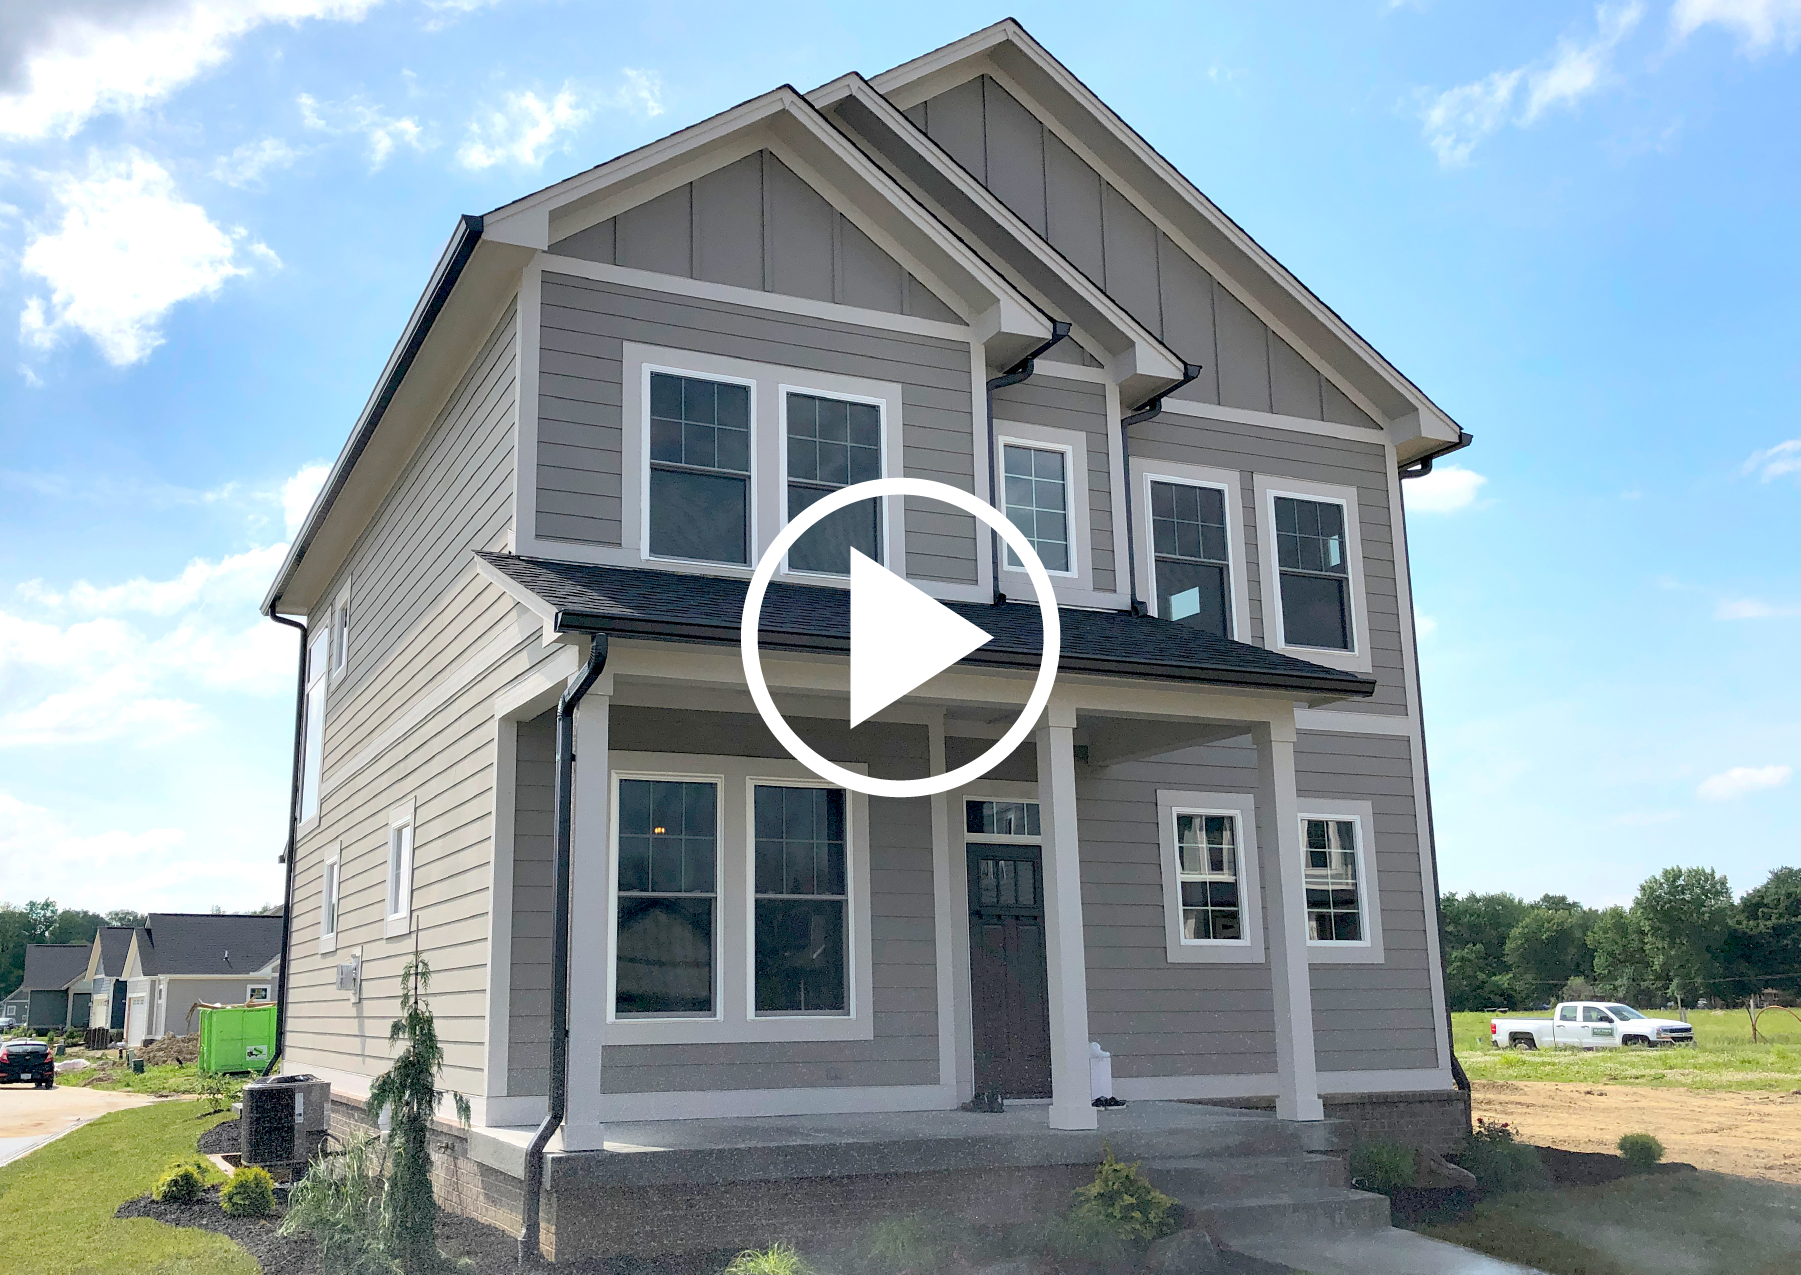 KEY SERIES - TULIP PLAN: Craftsman, Master Up, 4 Bed, 2-Story with Basement BUILD IN:  Sunrise on the Monon  only  DOWNLOAD FLOOR PLAN